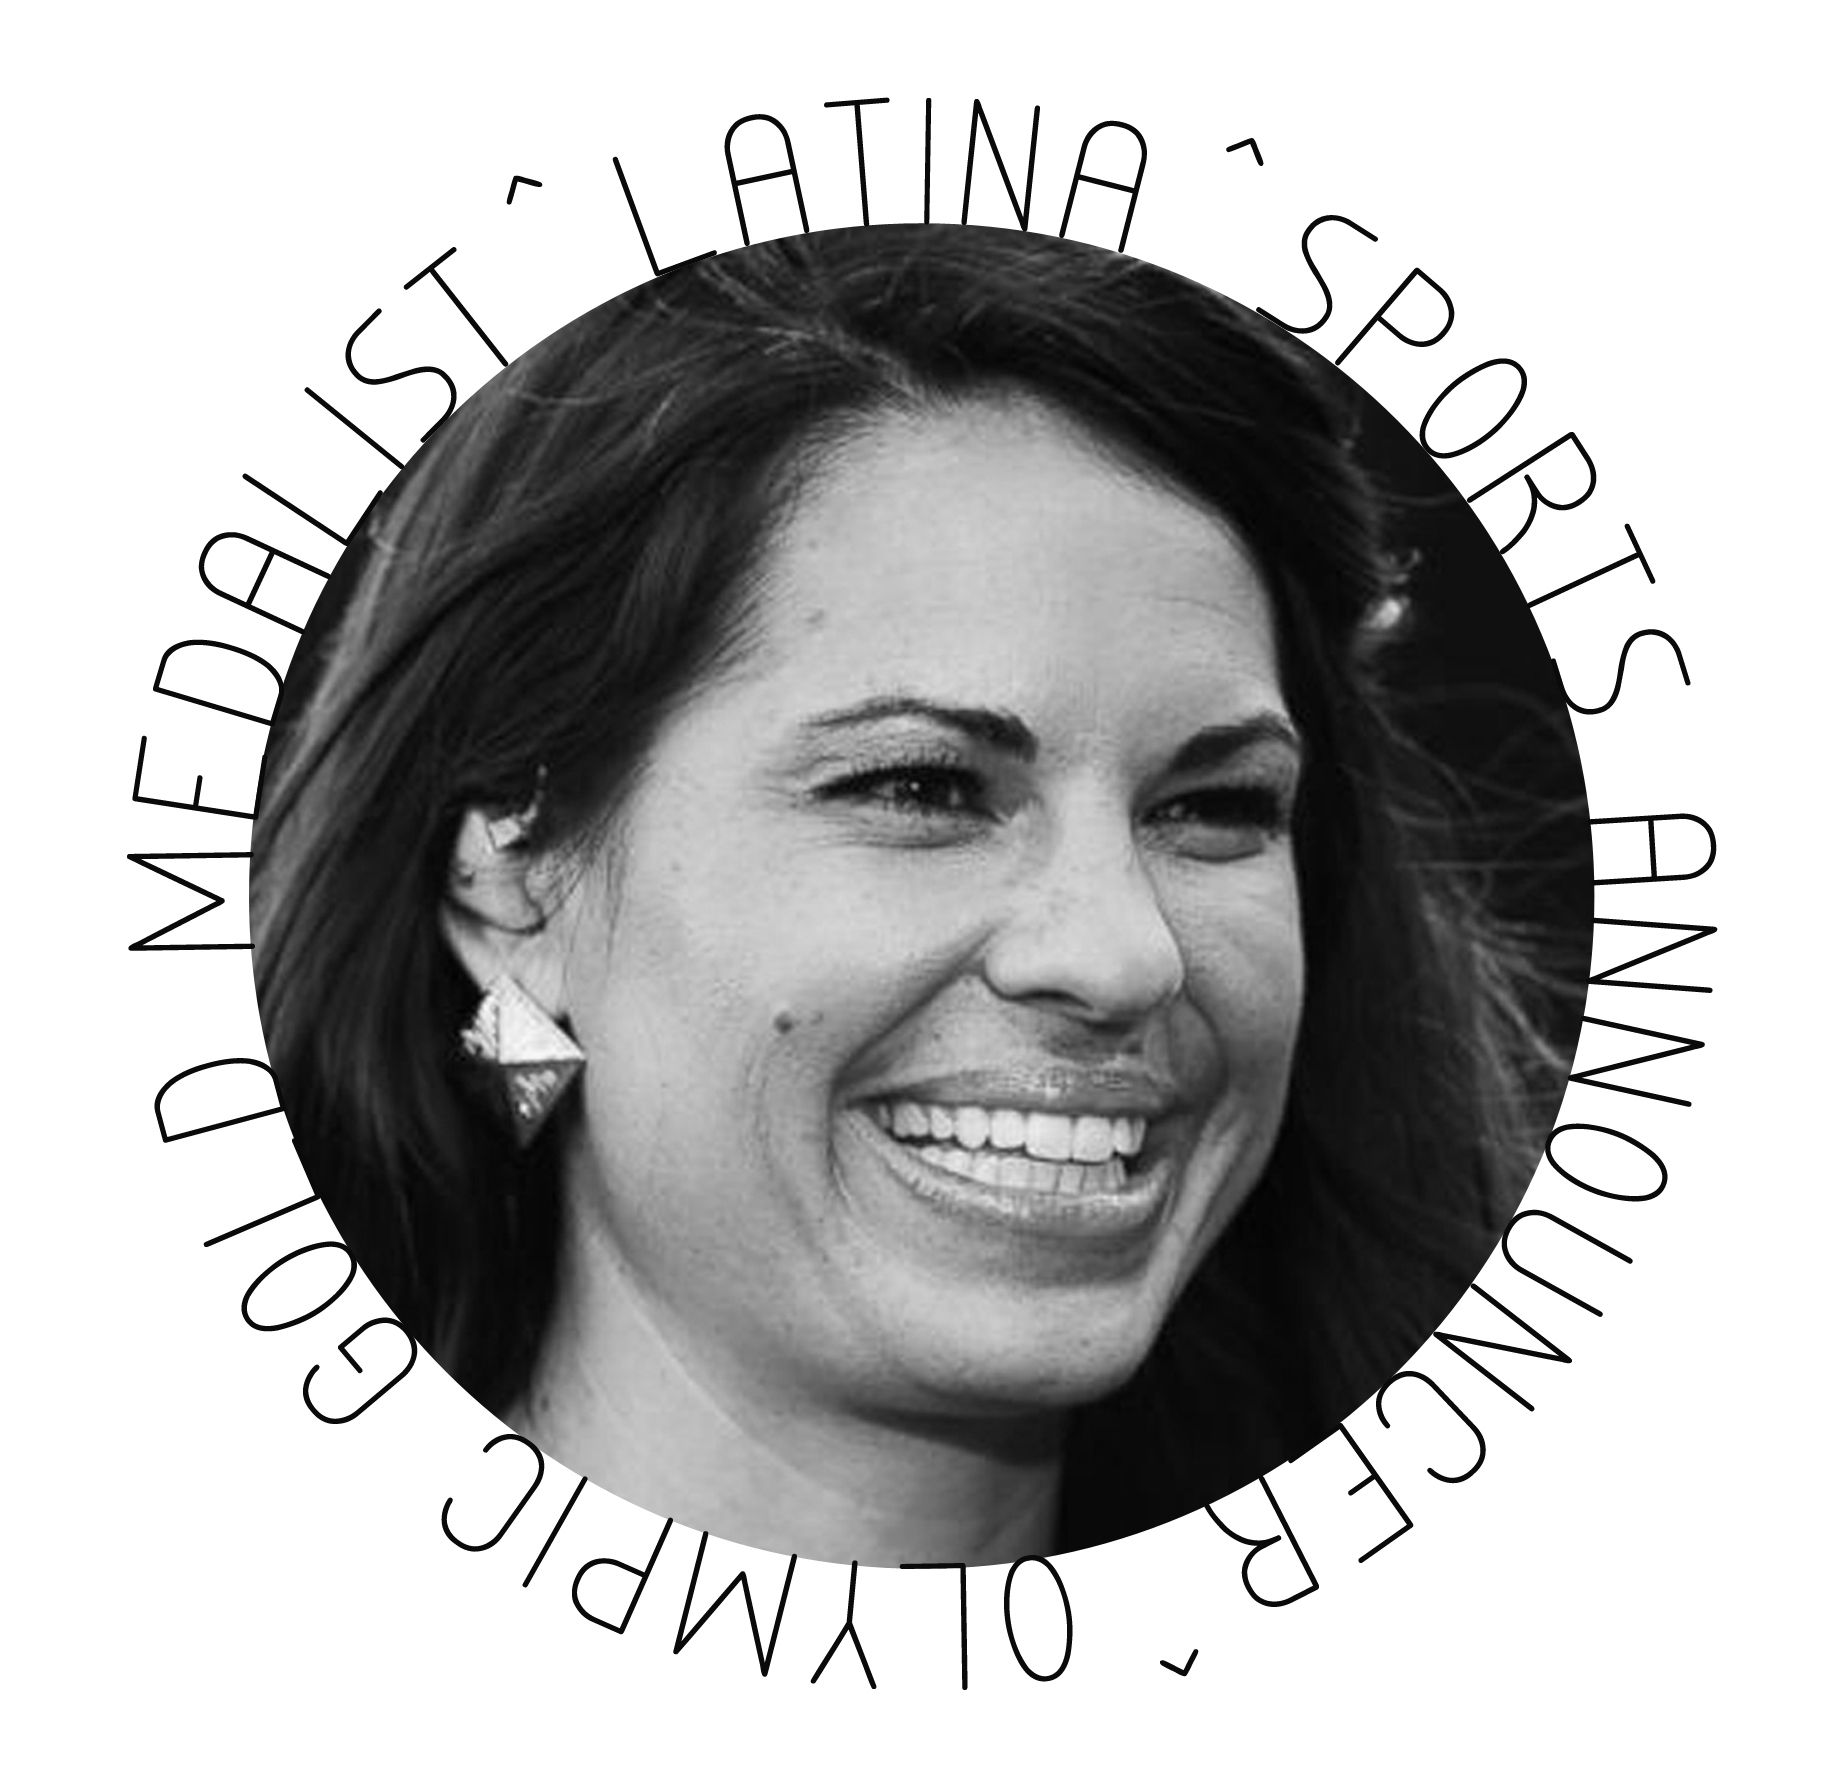 Jessica Mendoza Let's listen to what she is saying and